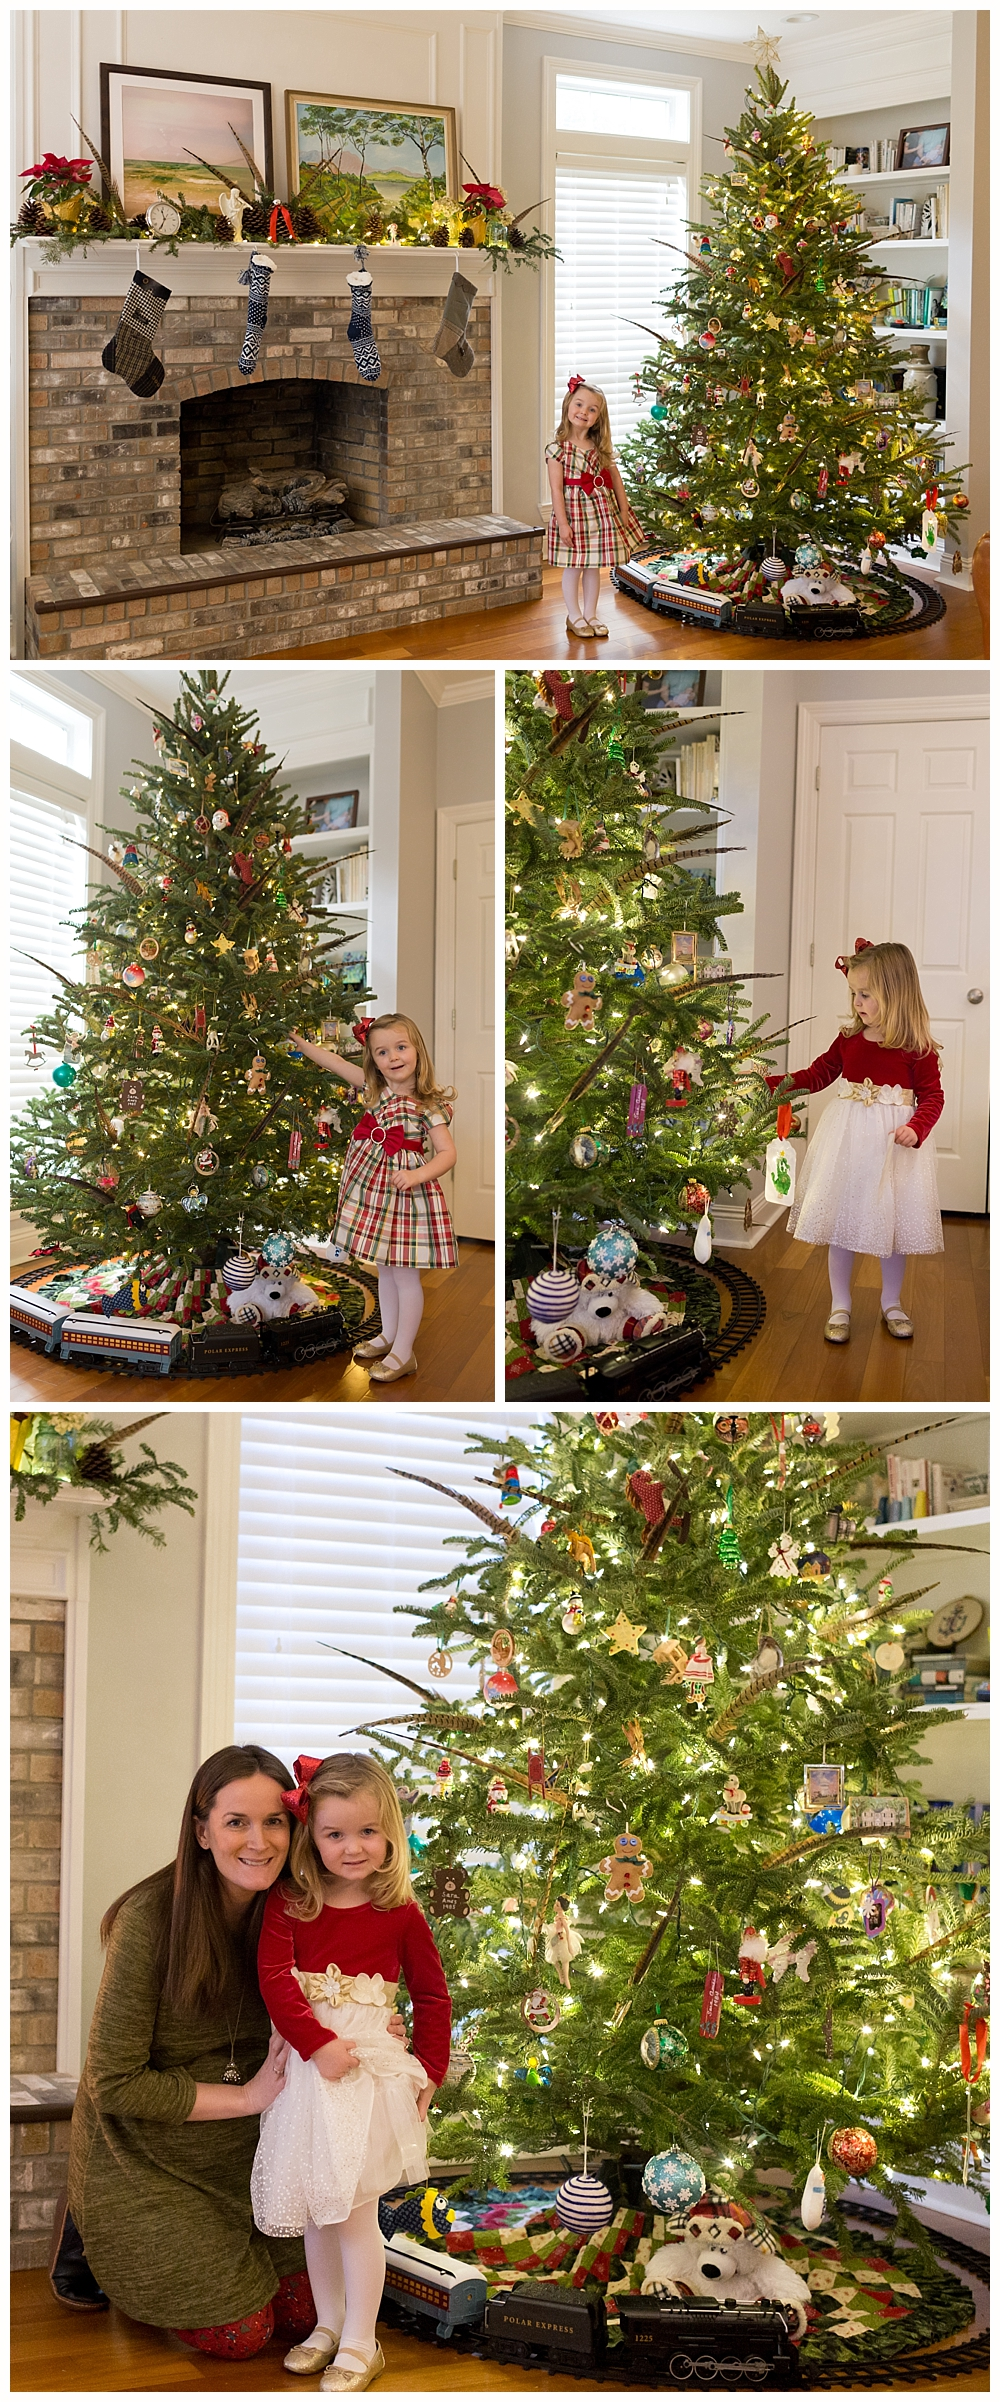 Christmas tree and stockings on mantel in Ocean Springs, Mississippi